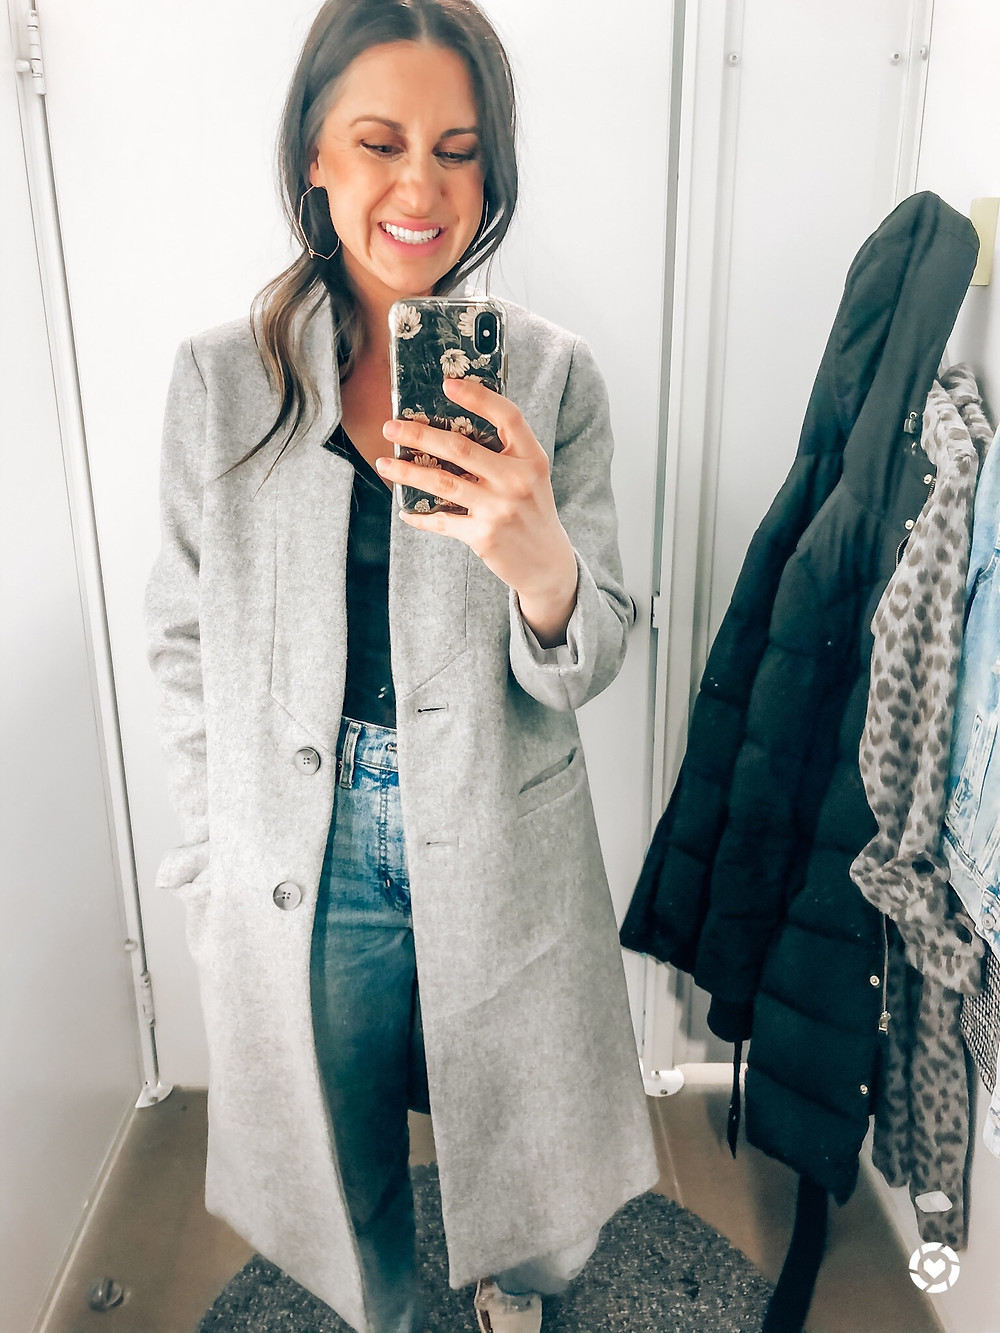 Gray Chic Winter Coat from Old Navy on Sale Courtney Garrison